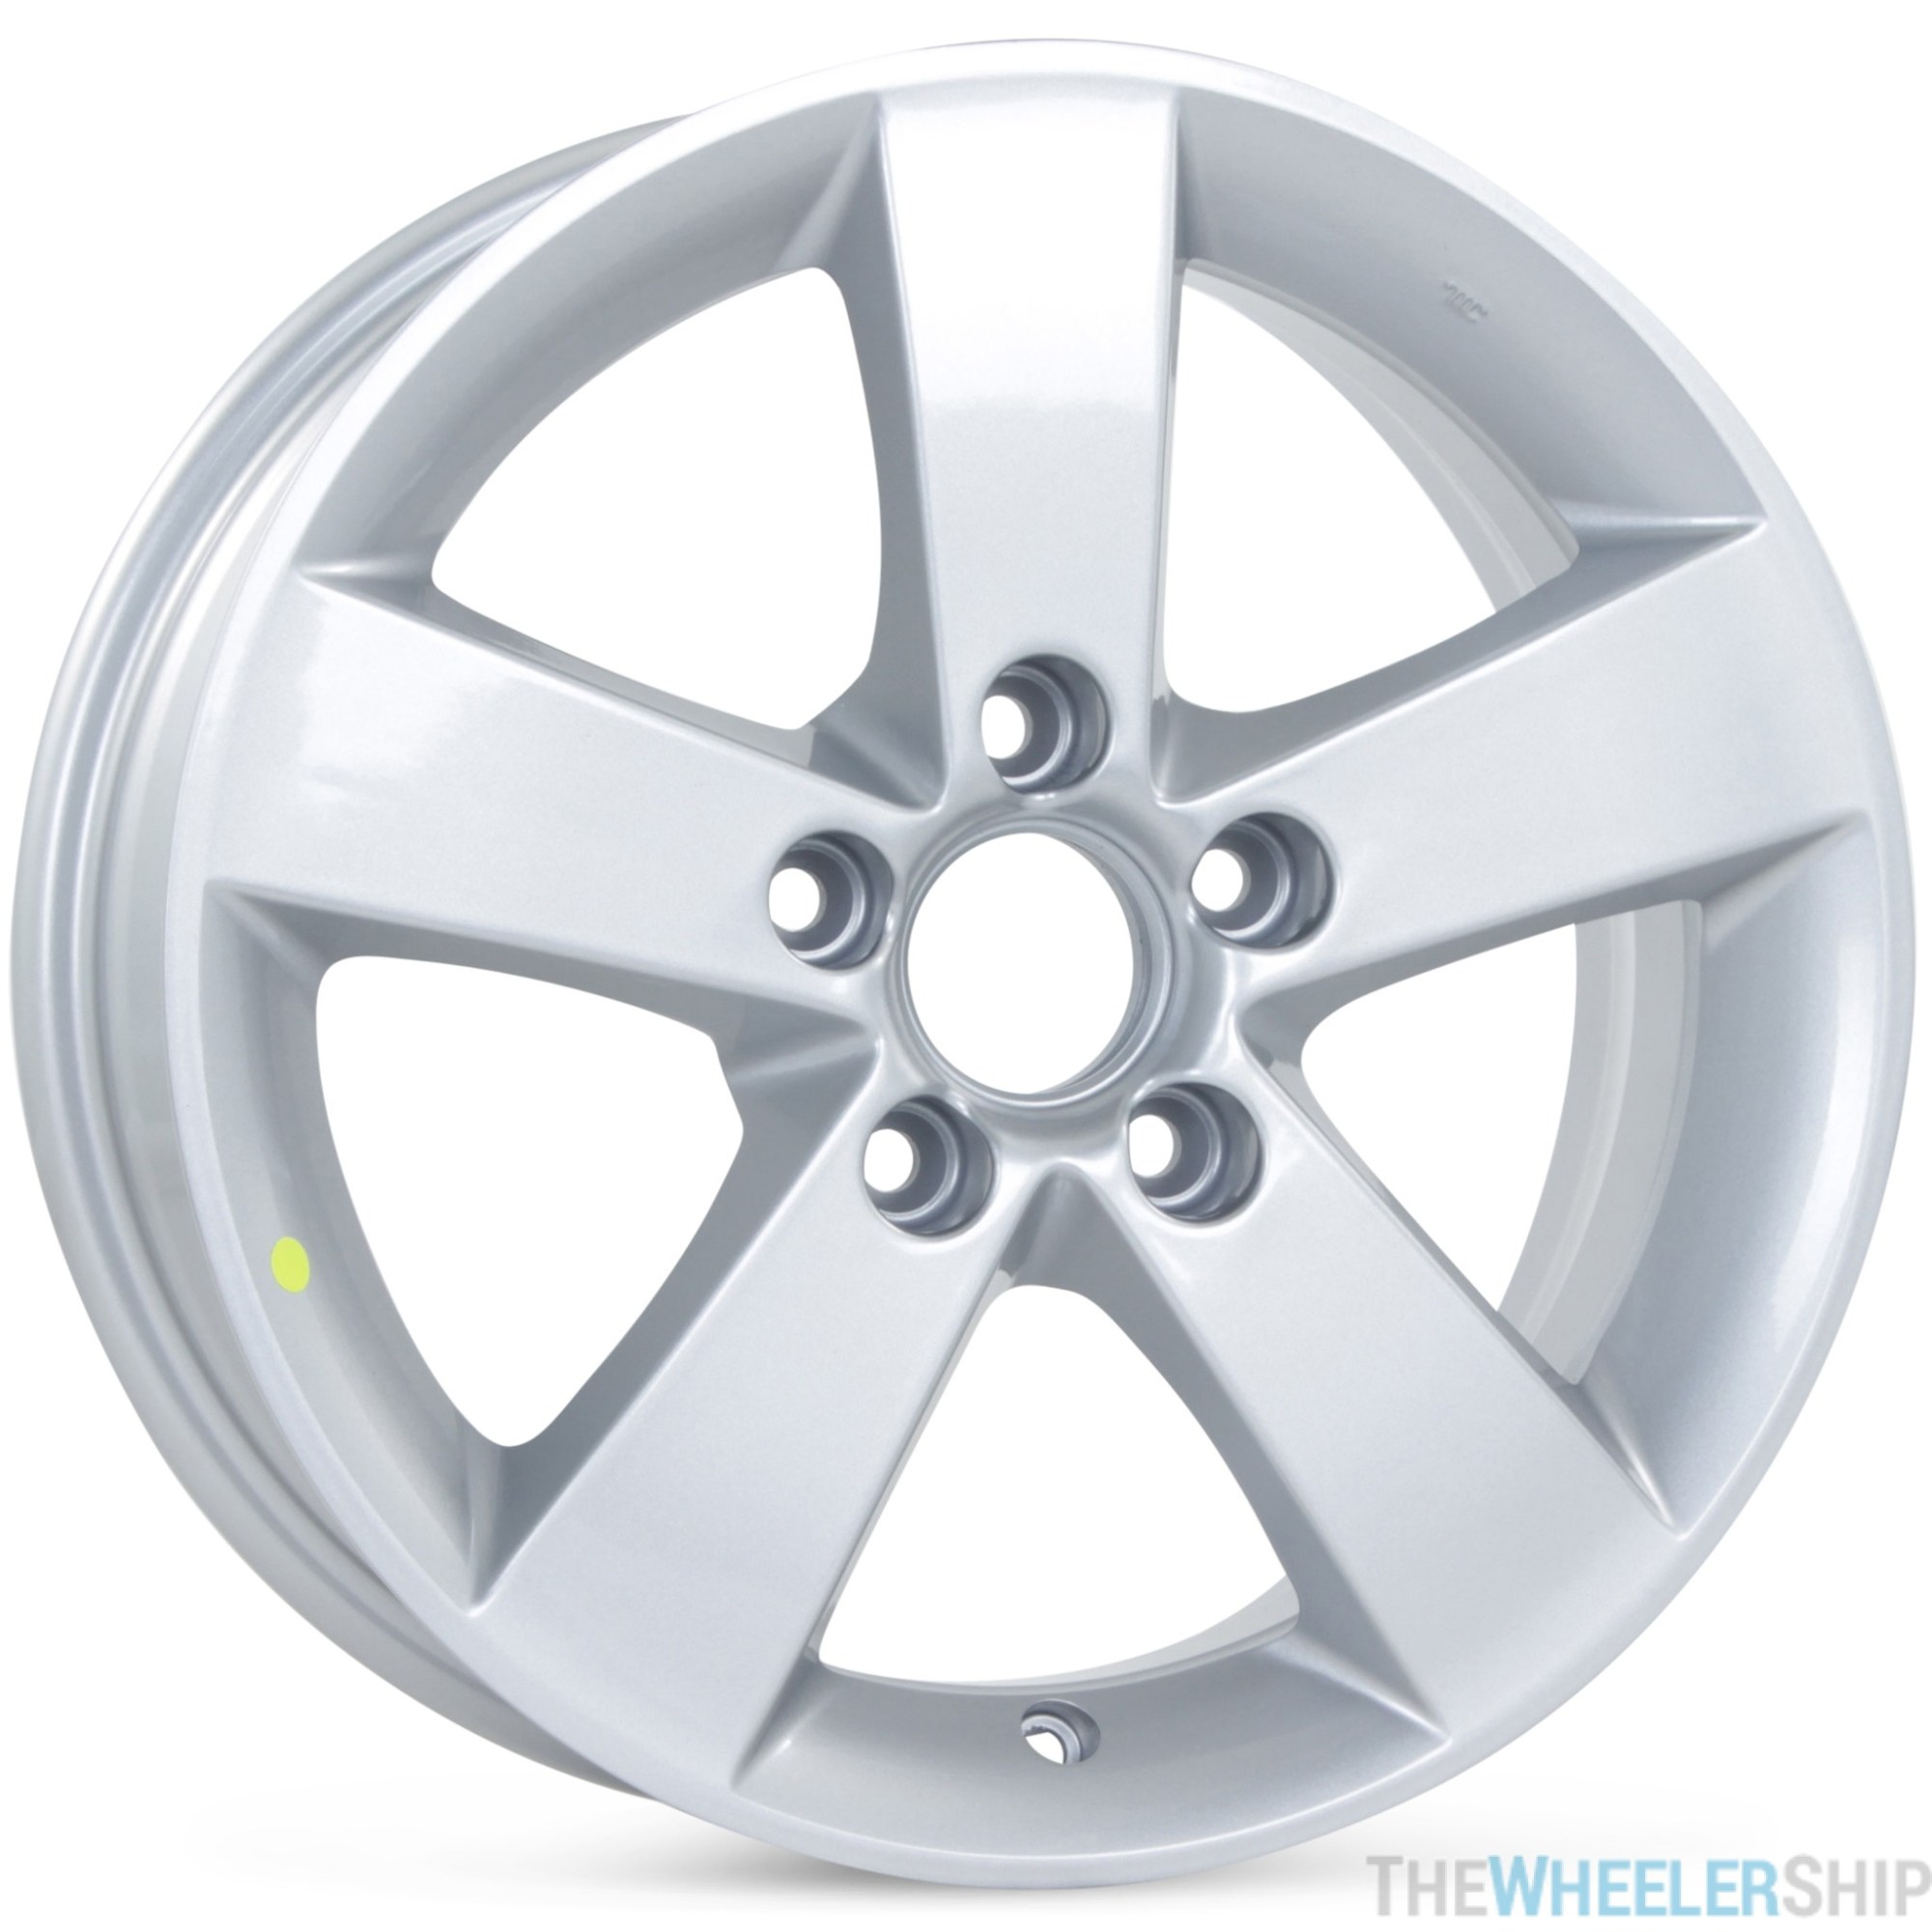 hight resolution of new 16 x 6 5 replacement wheel for honda civic 2006 2007 2008 2009 2010 2011 rim 63899